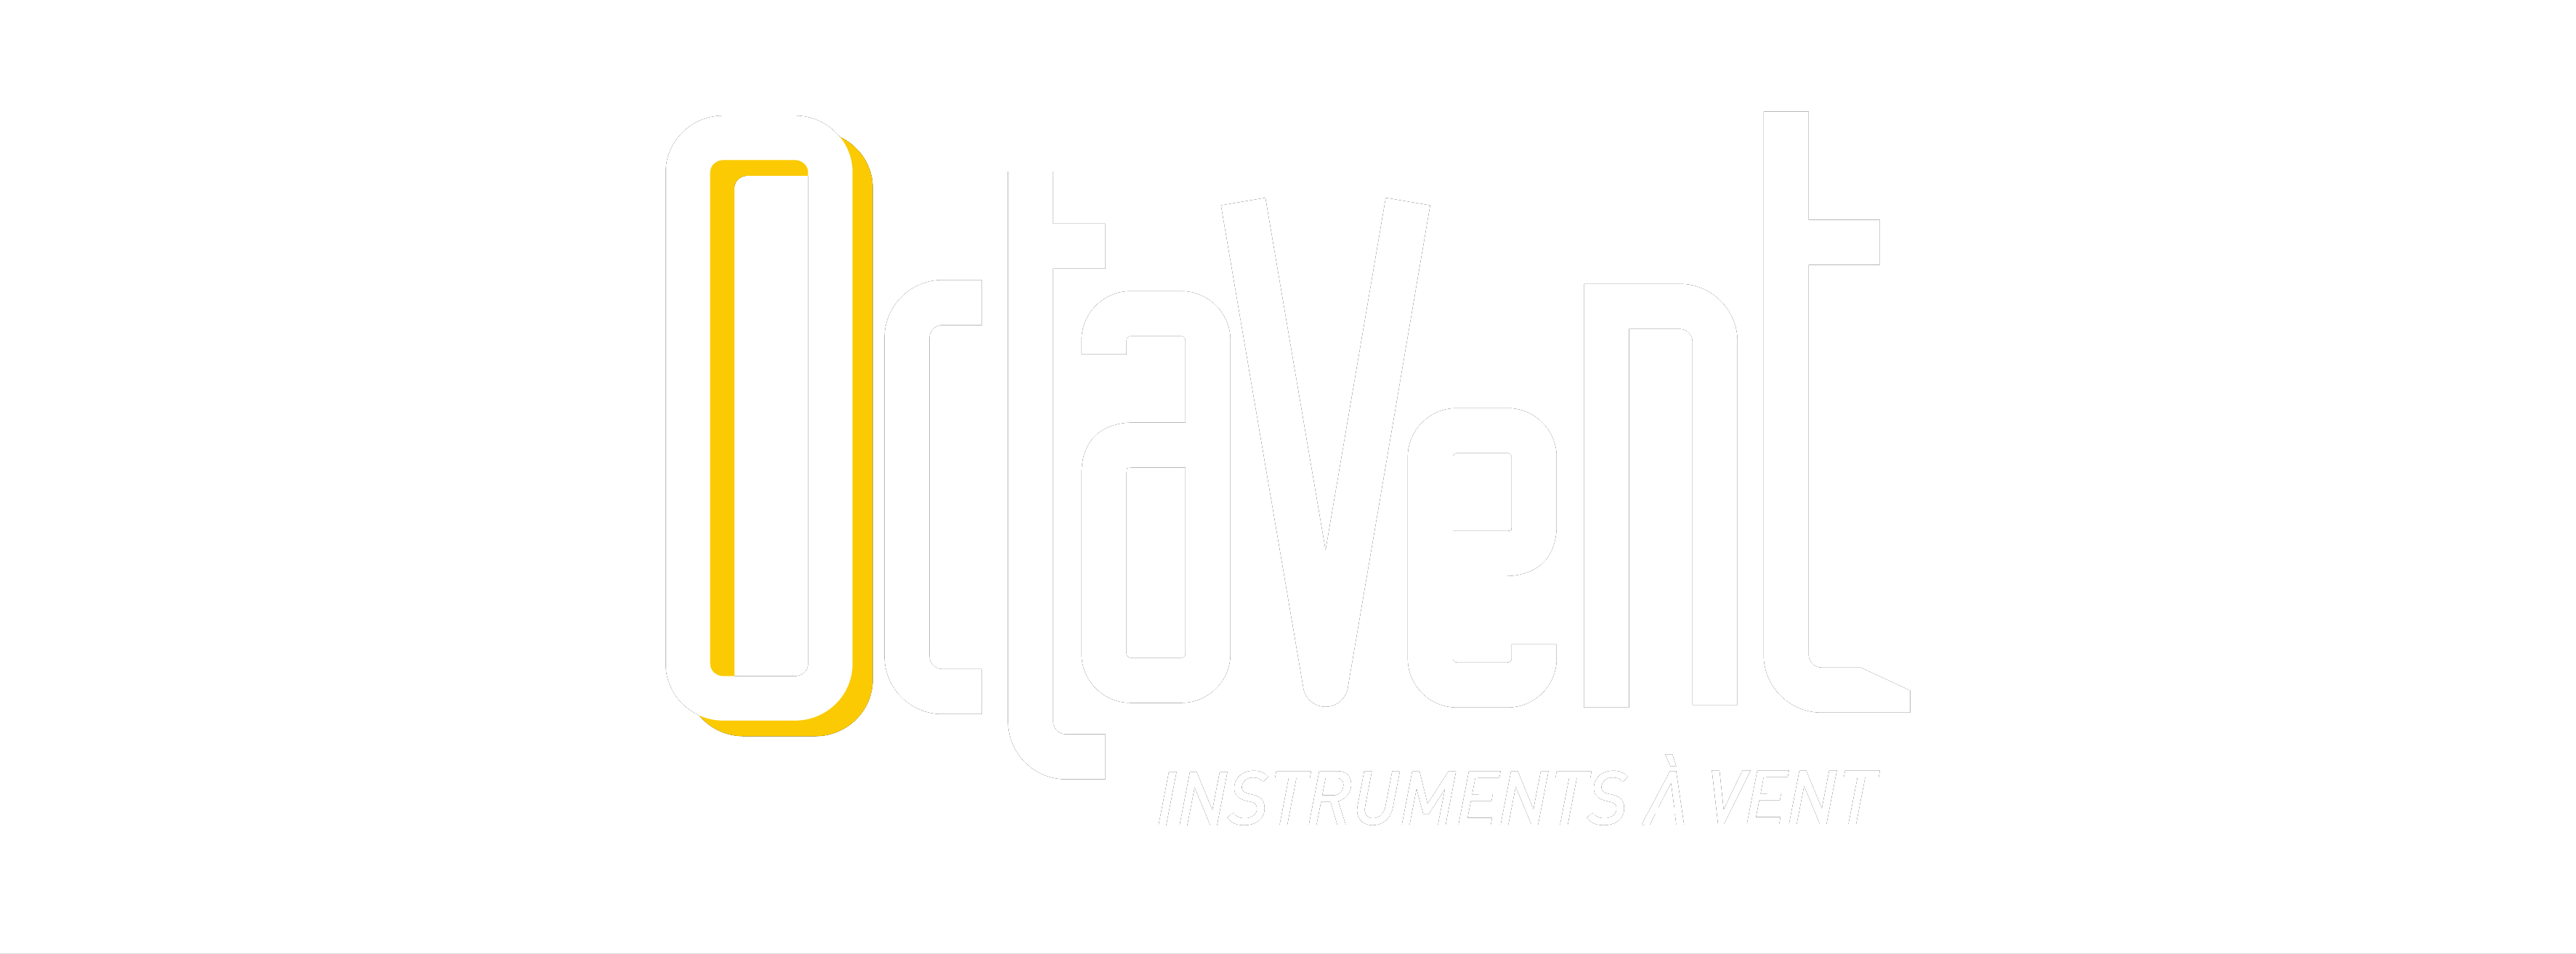 octavents_logo